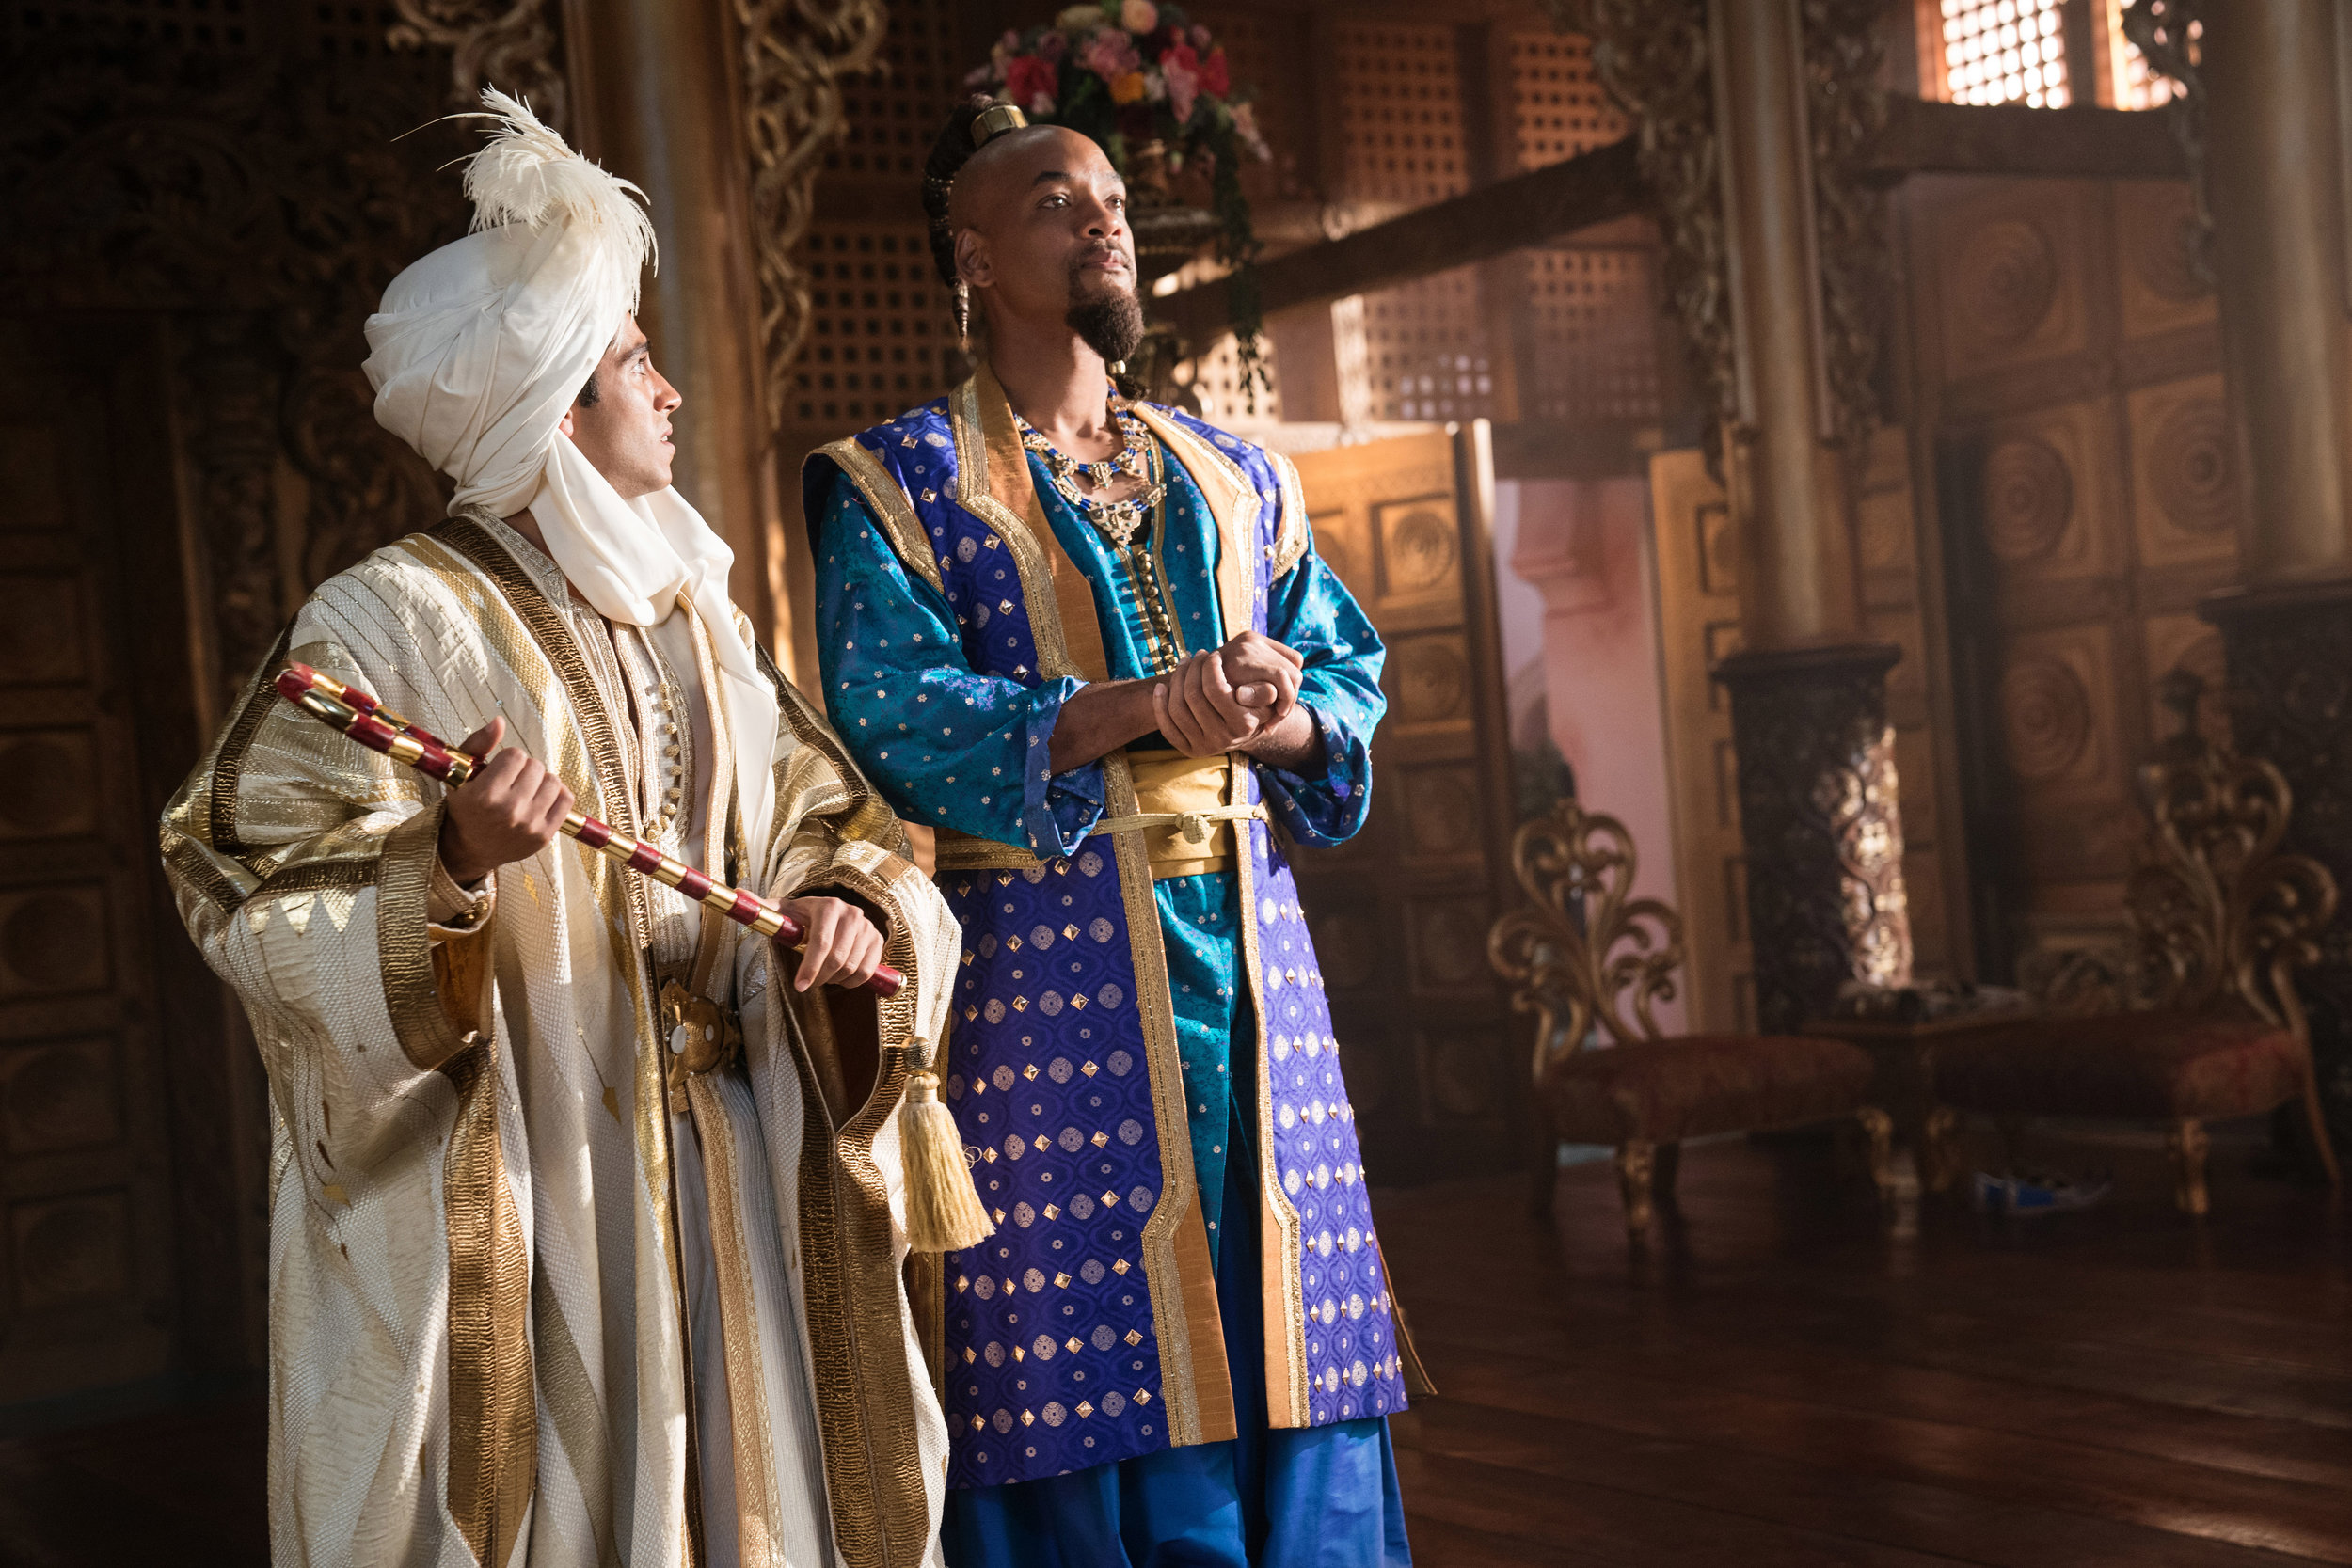 """Aladdin (Mena Massour, left), in his disguise as Prince Ali, gets advice from Genie (Will Smith), in a scene from Disney's live-action remake of """"Aladdin."""" (Photo courtesy Walt Disney Pictures.)"""